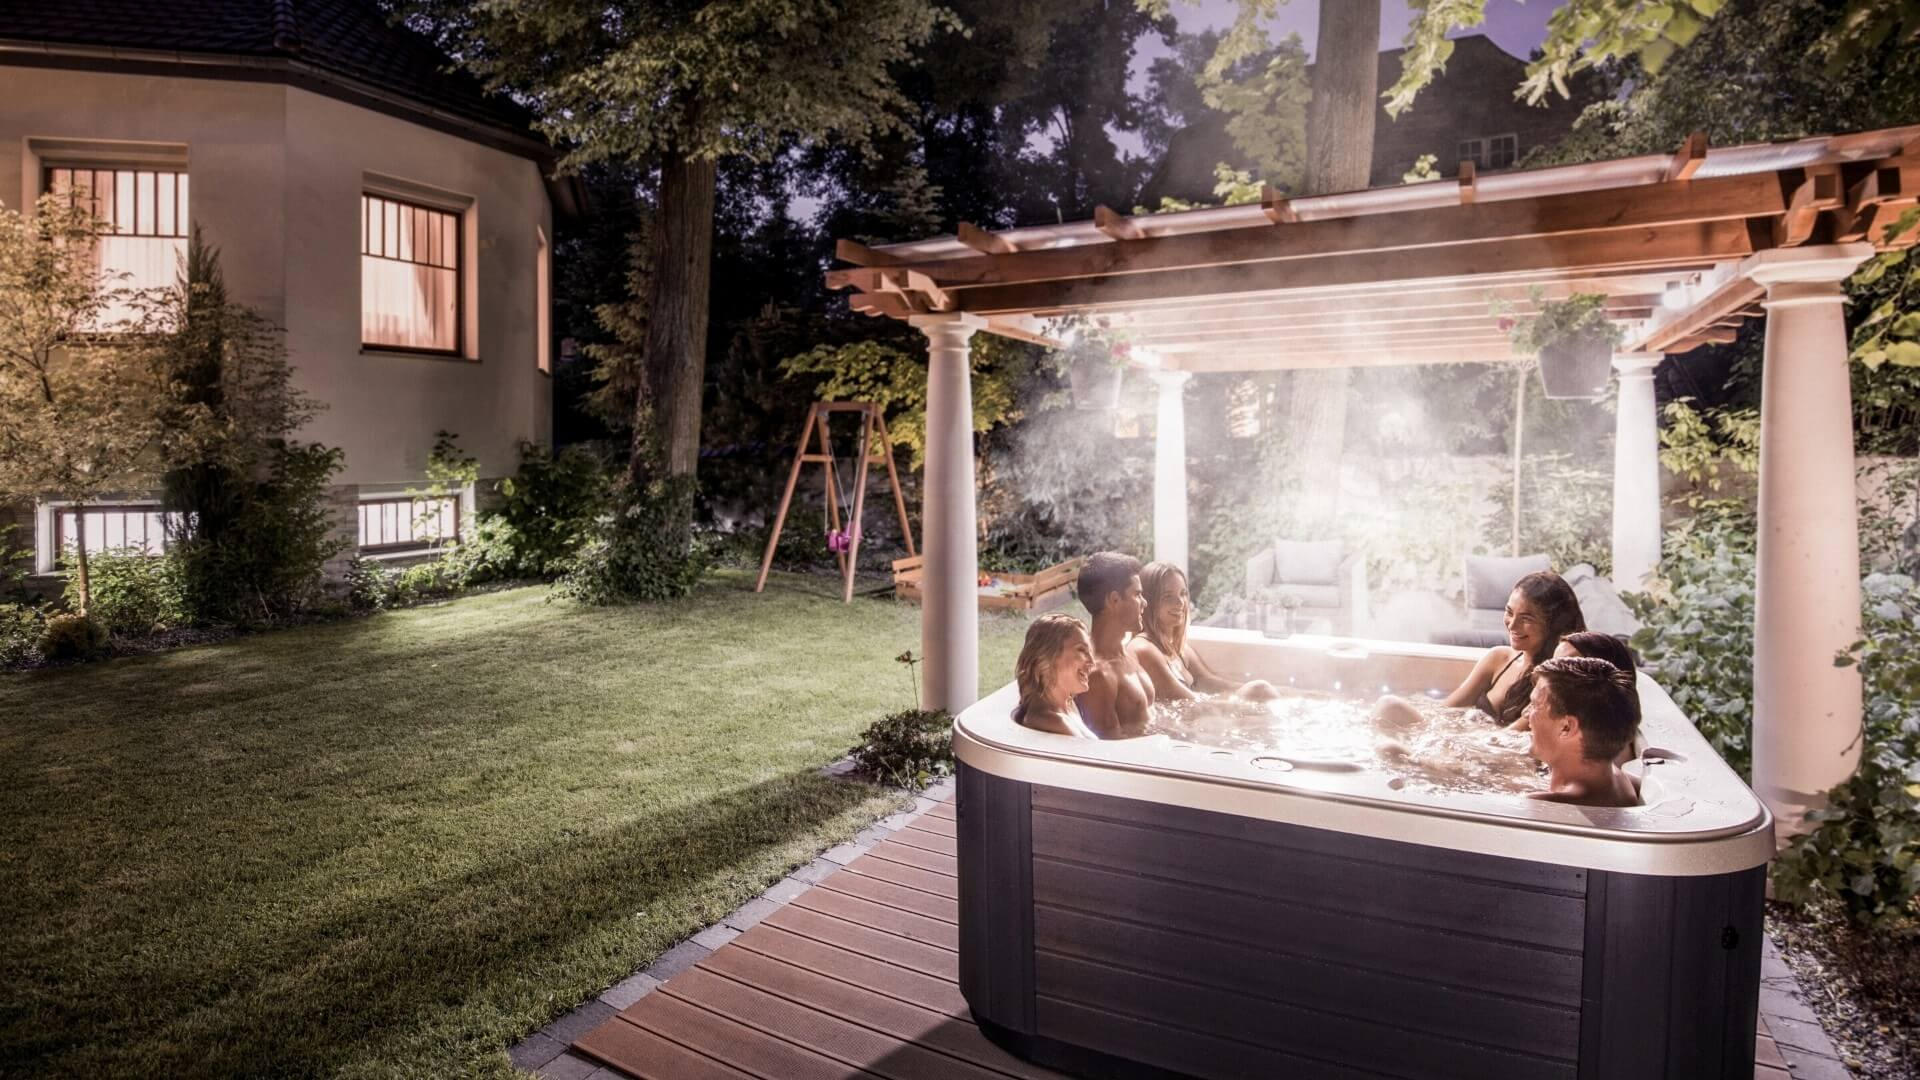 Whirlpool - Wellnessoase Garten